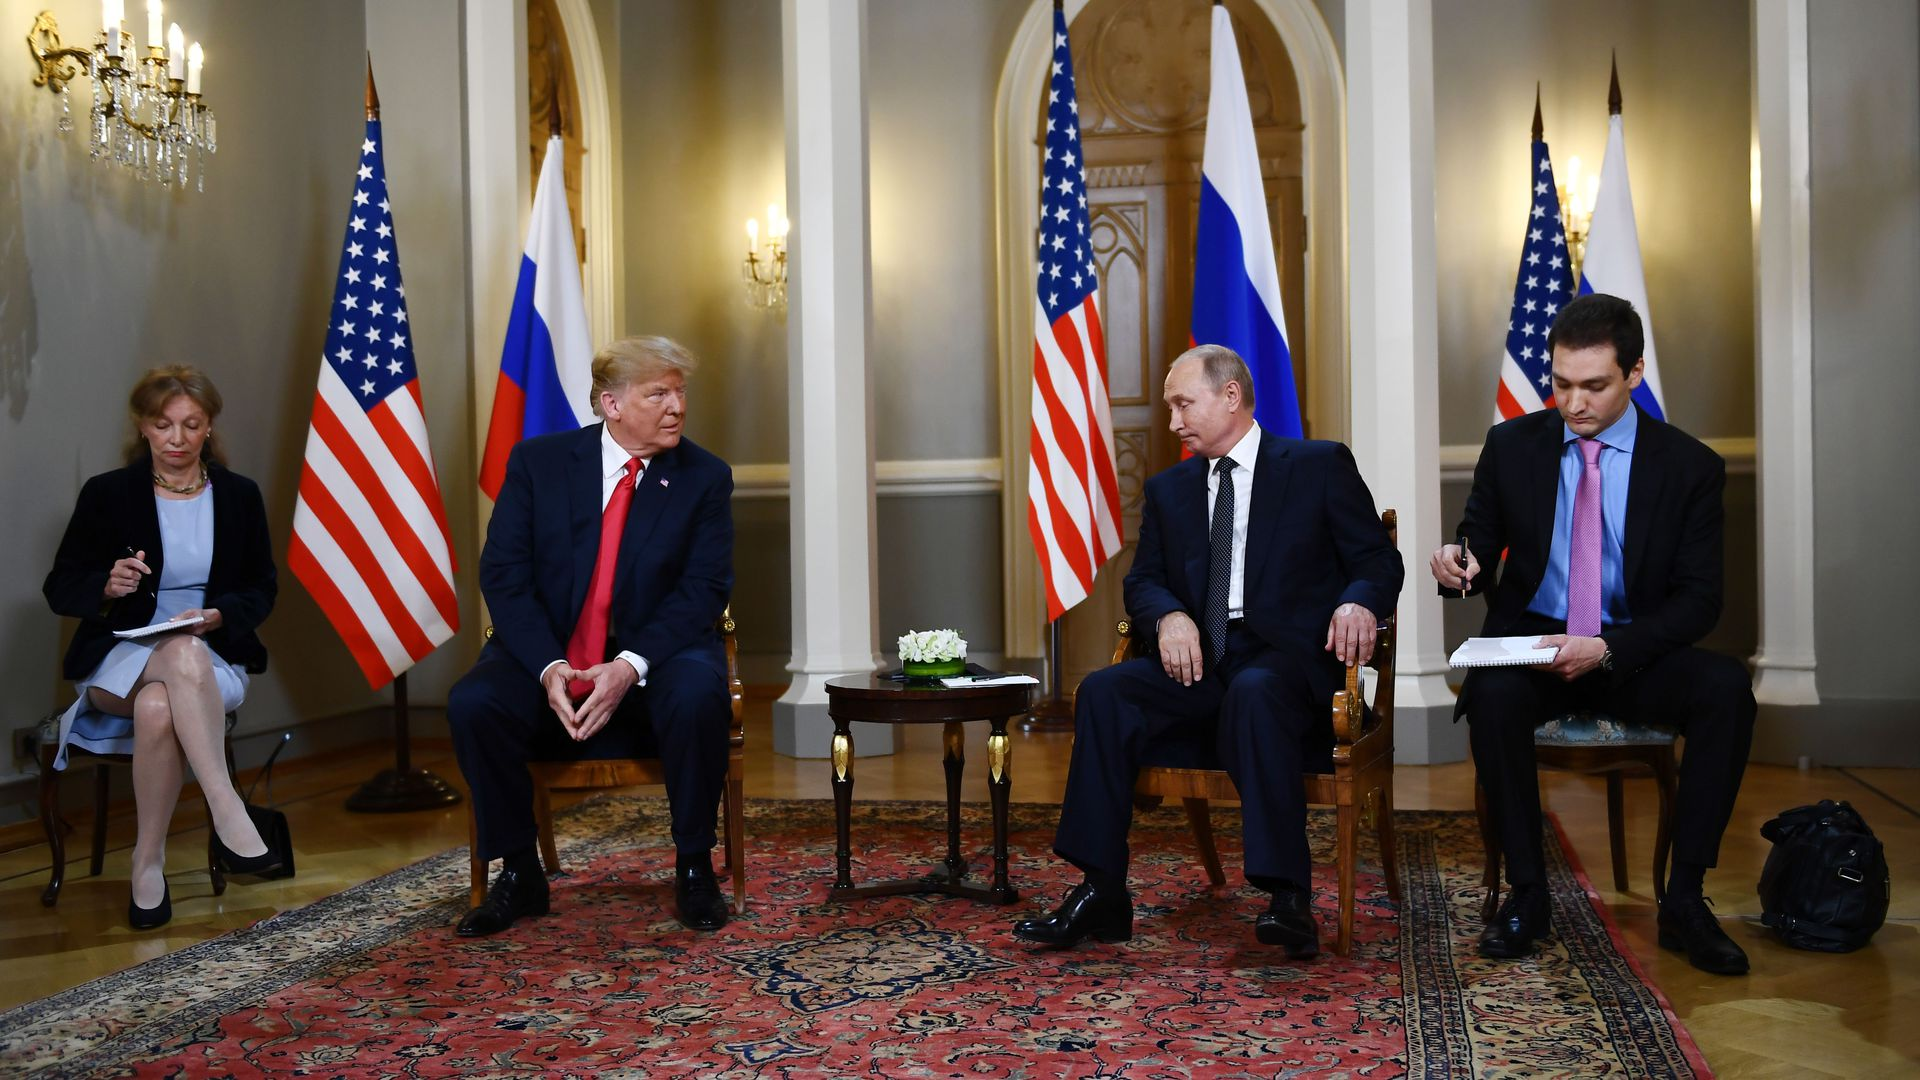 Donald Trump and Vladimir Putin begin meeting in Helsinki.